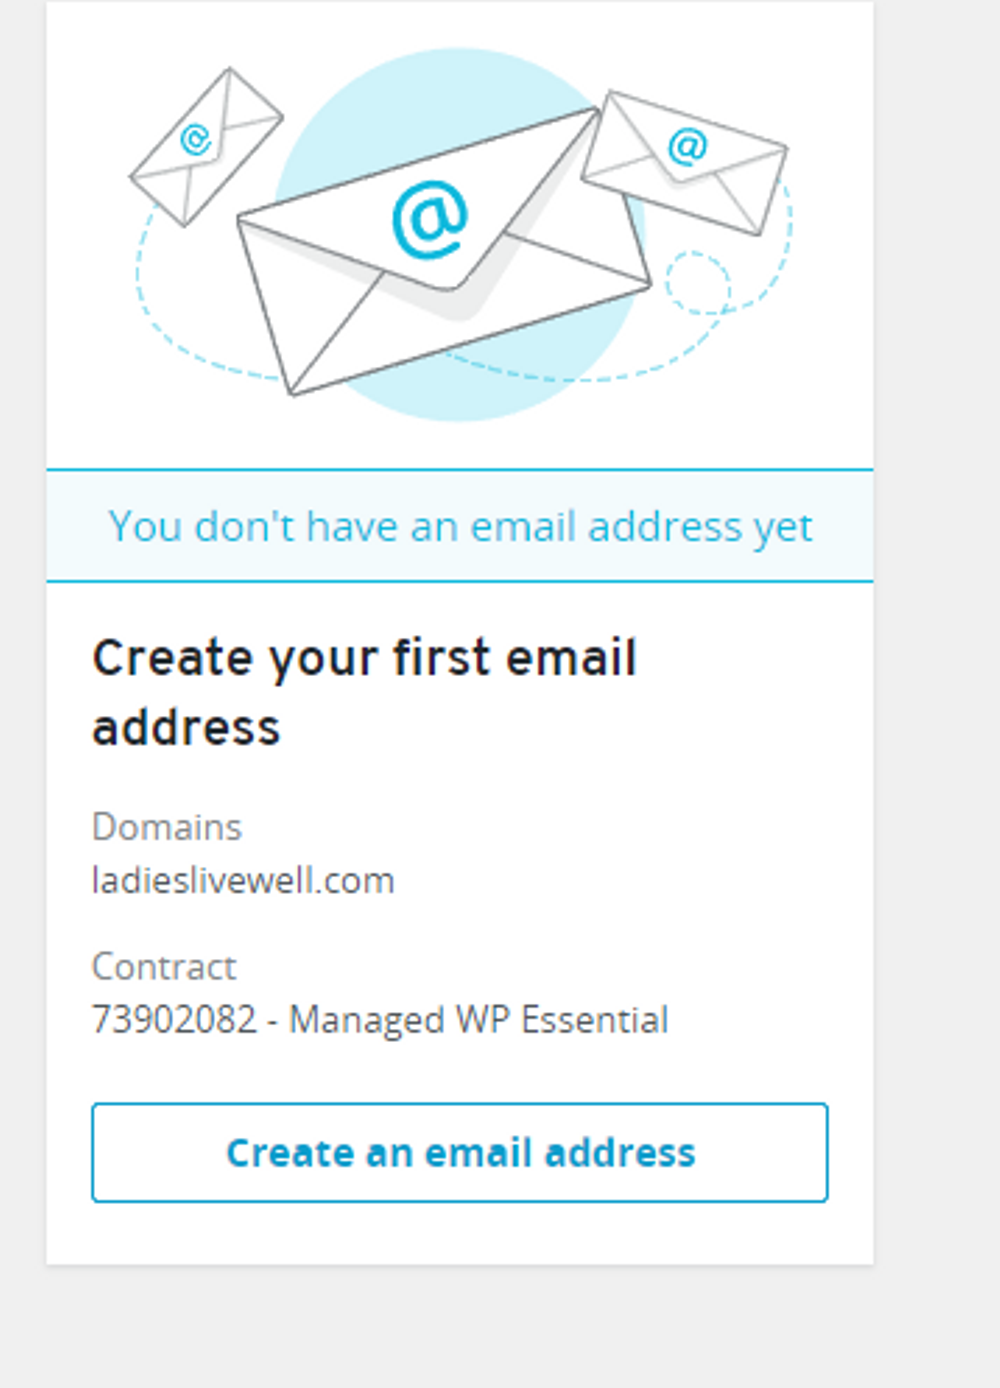 Image showing Ionos create an email address page.